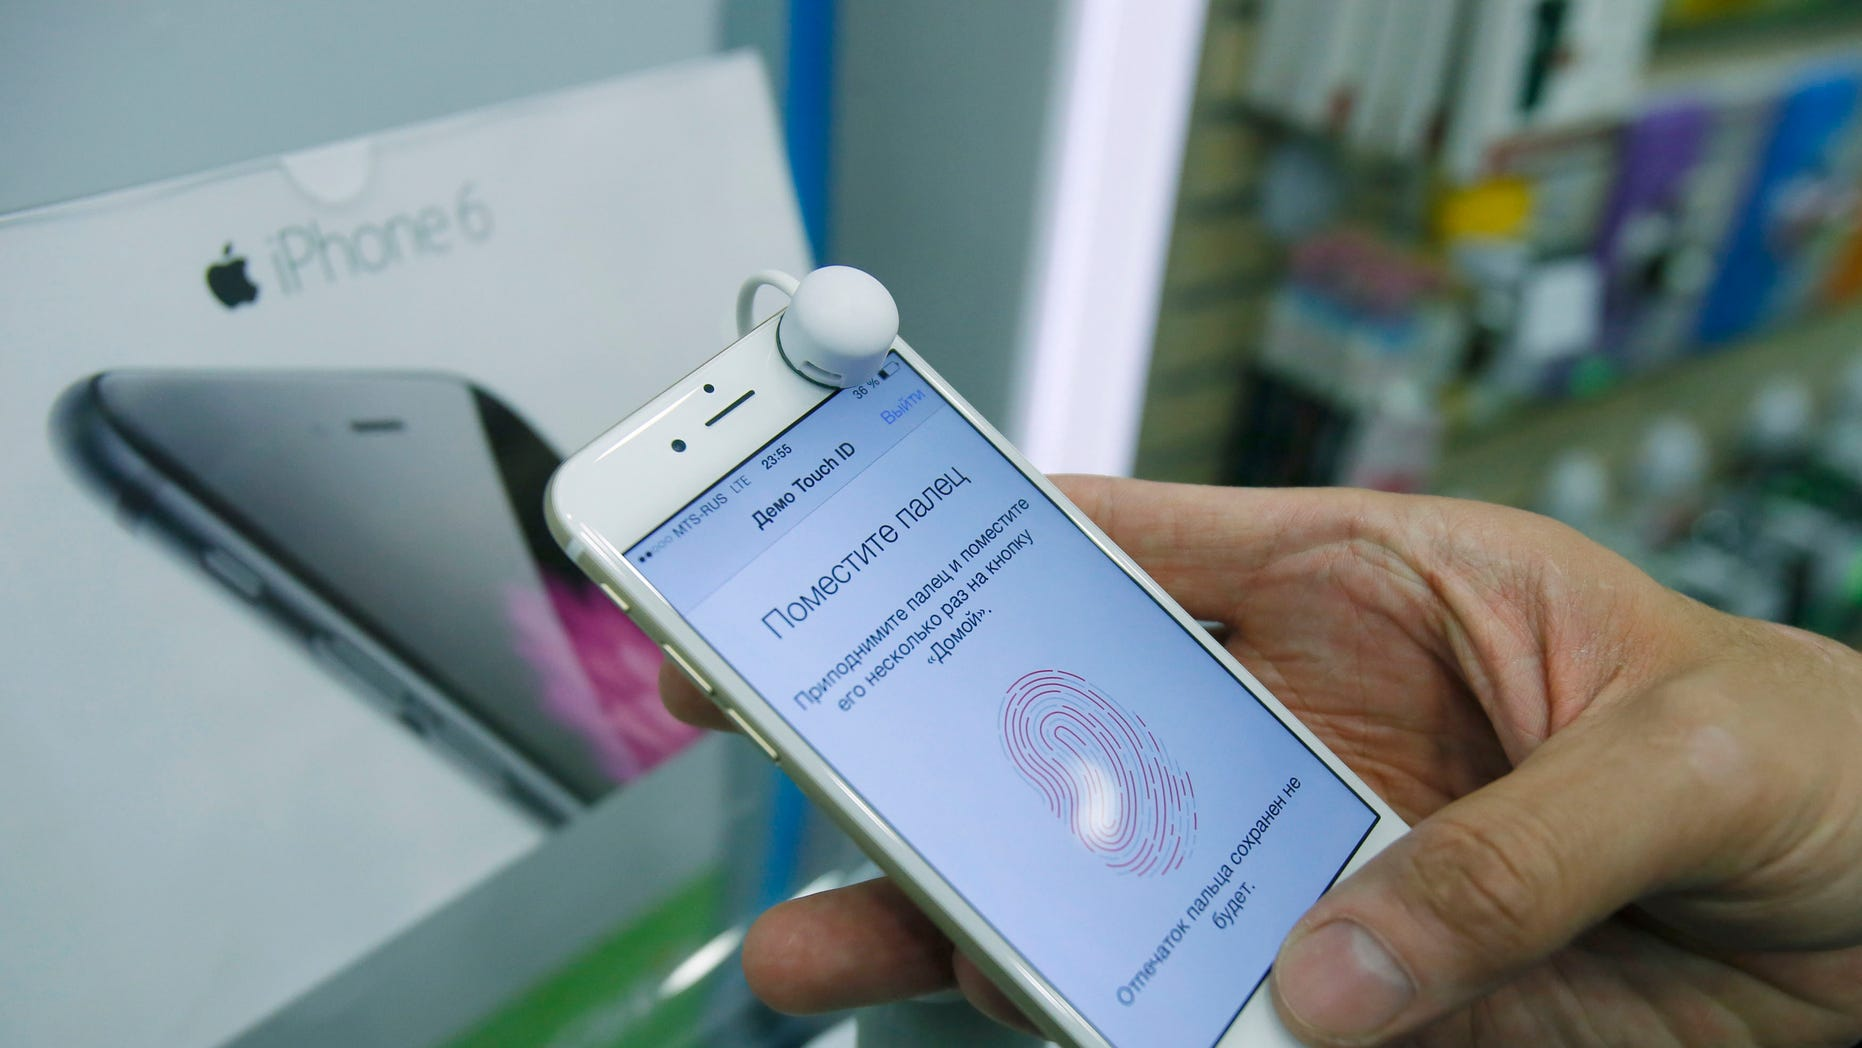 A man holds an iPhone 6 in a mobile phone shop in Moscow.